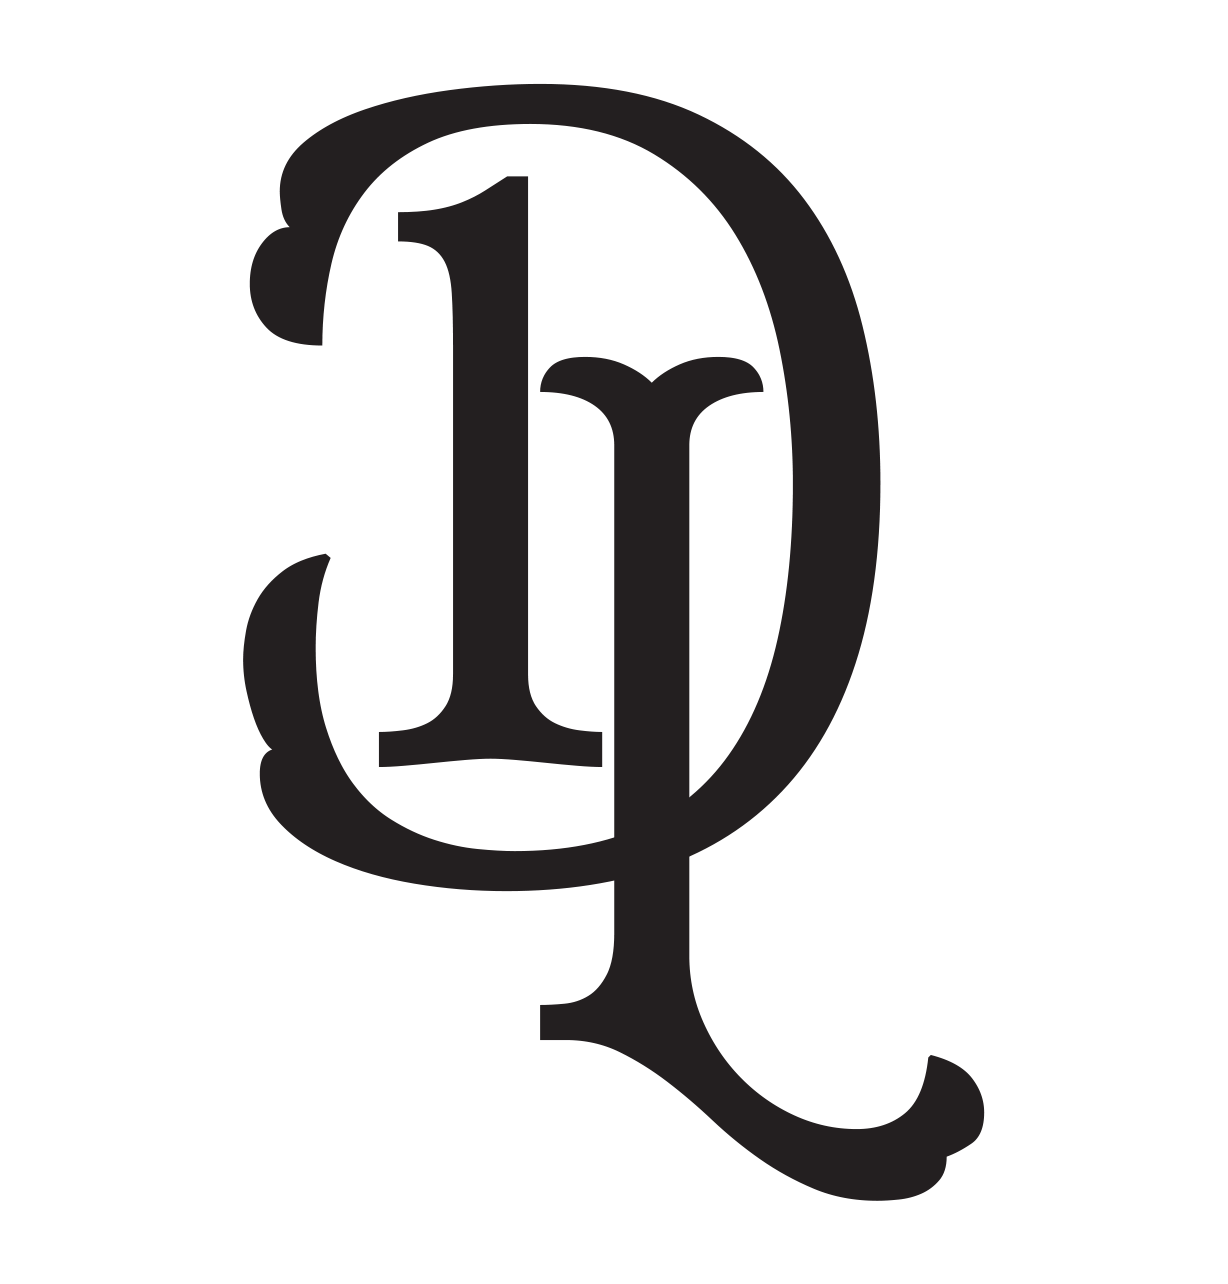 delaney lane logo milonga DL.png